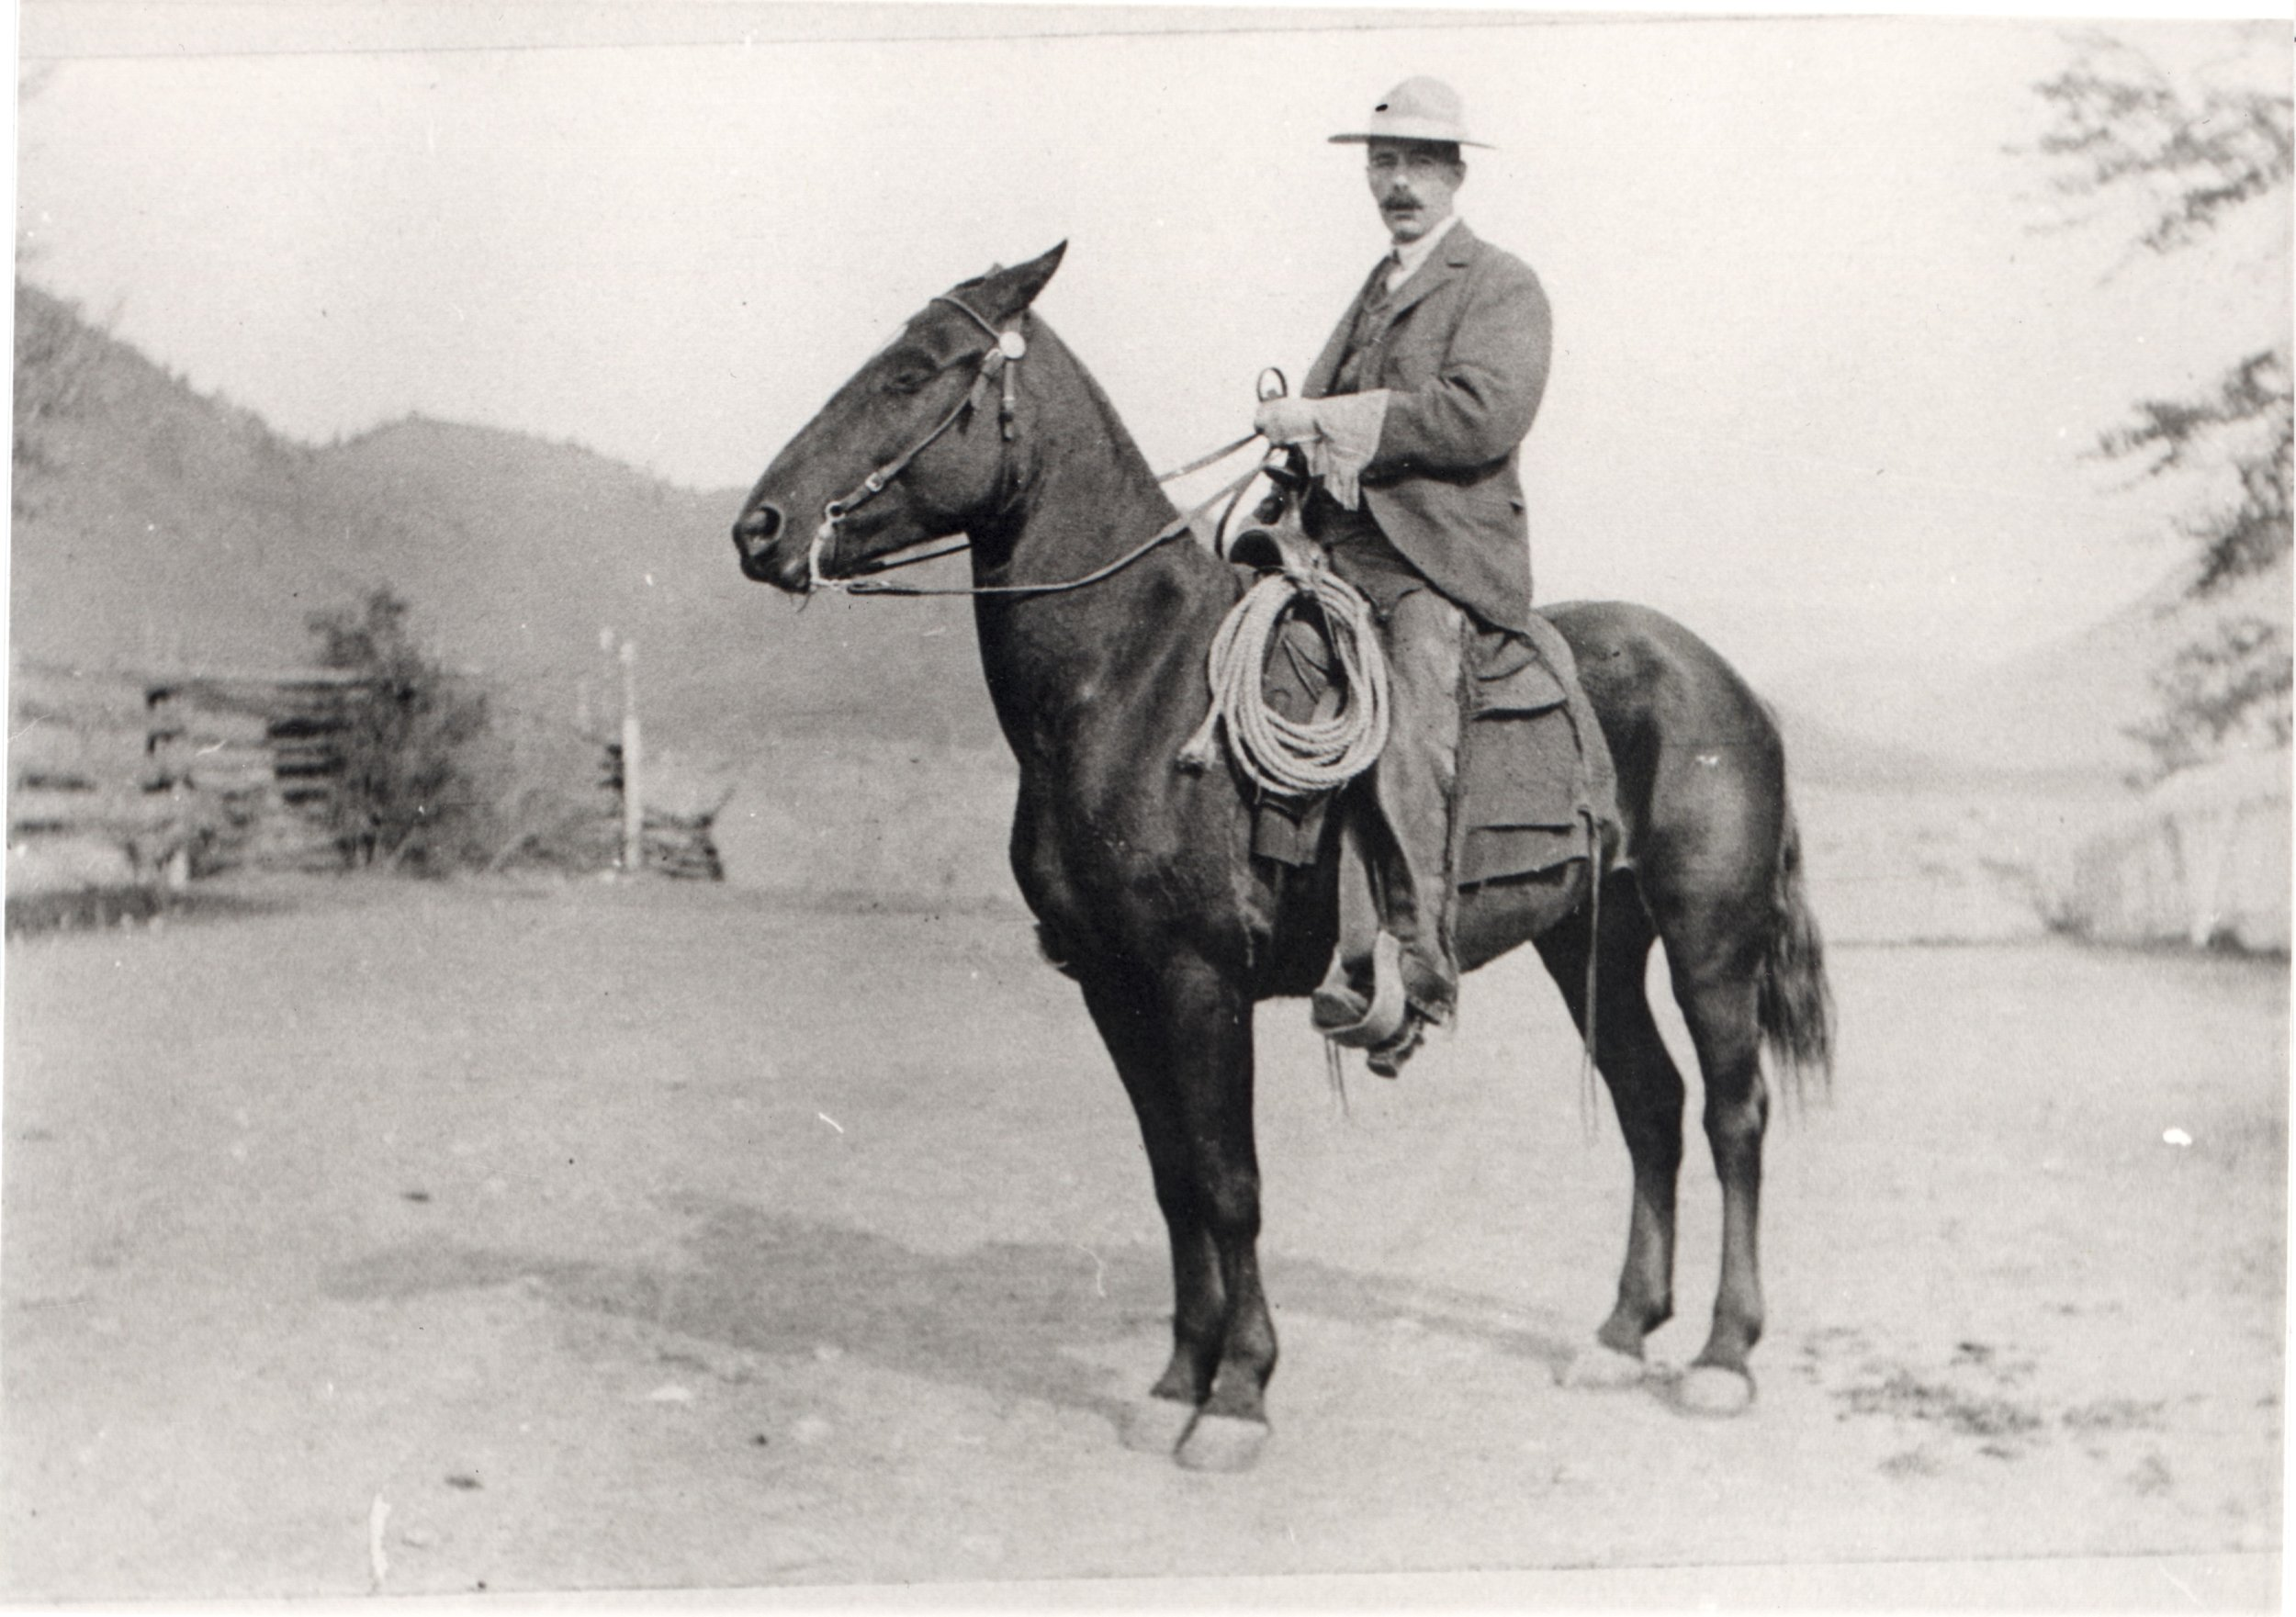 """ca. 1980. George Barclay riding his horse on the Barclay Ranch, which was used for raising cattle and horses. The ranch was also used as a school to train """"Gentleman Ranchers."""""""